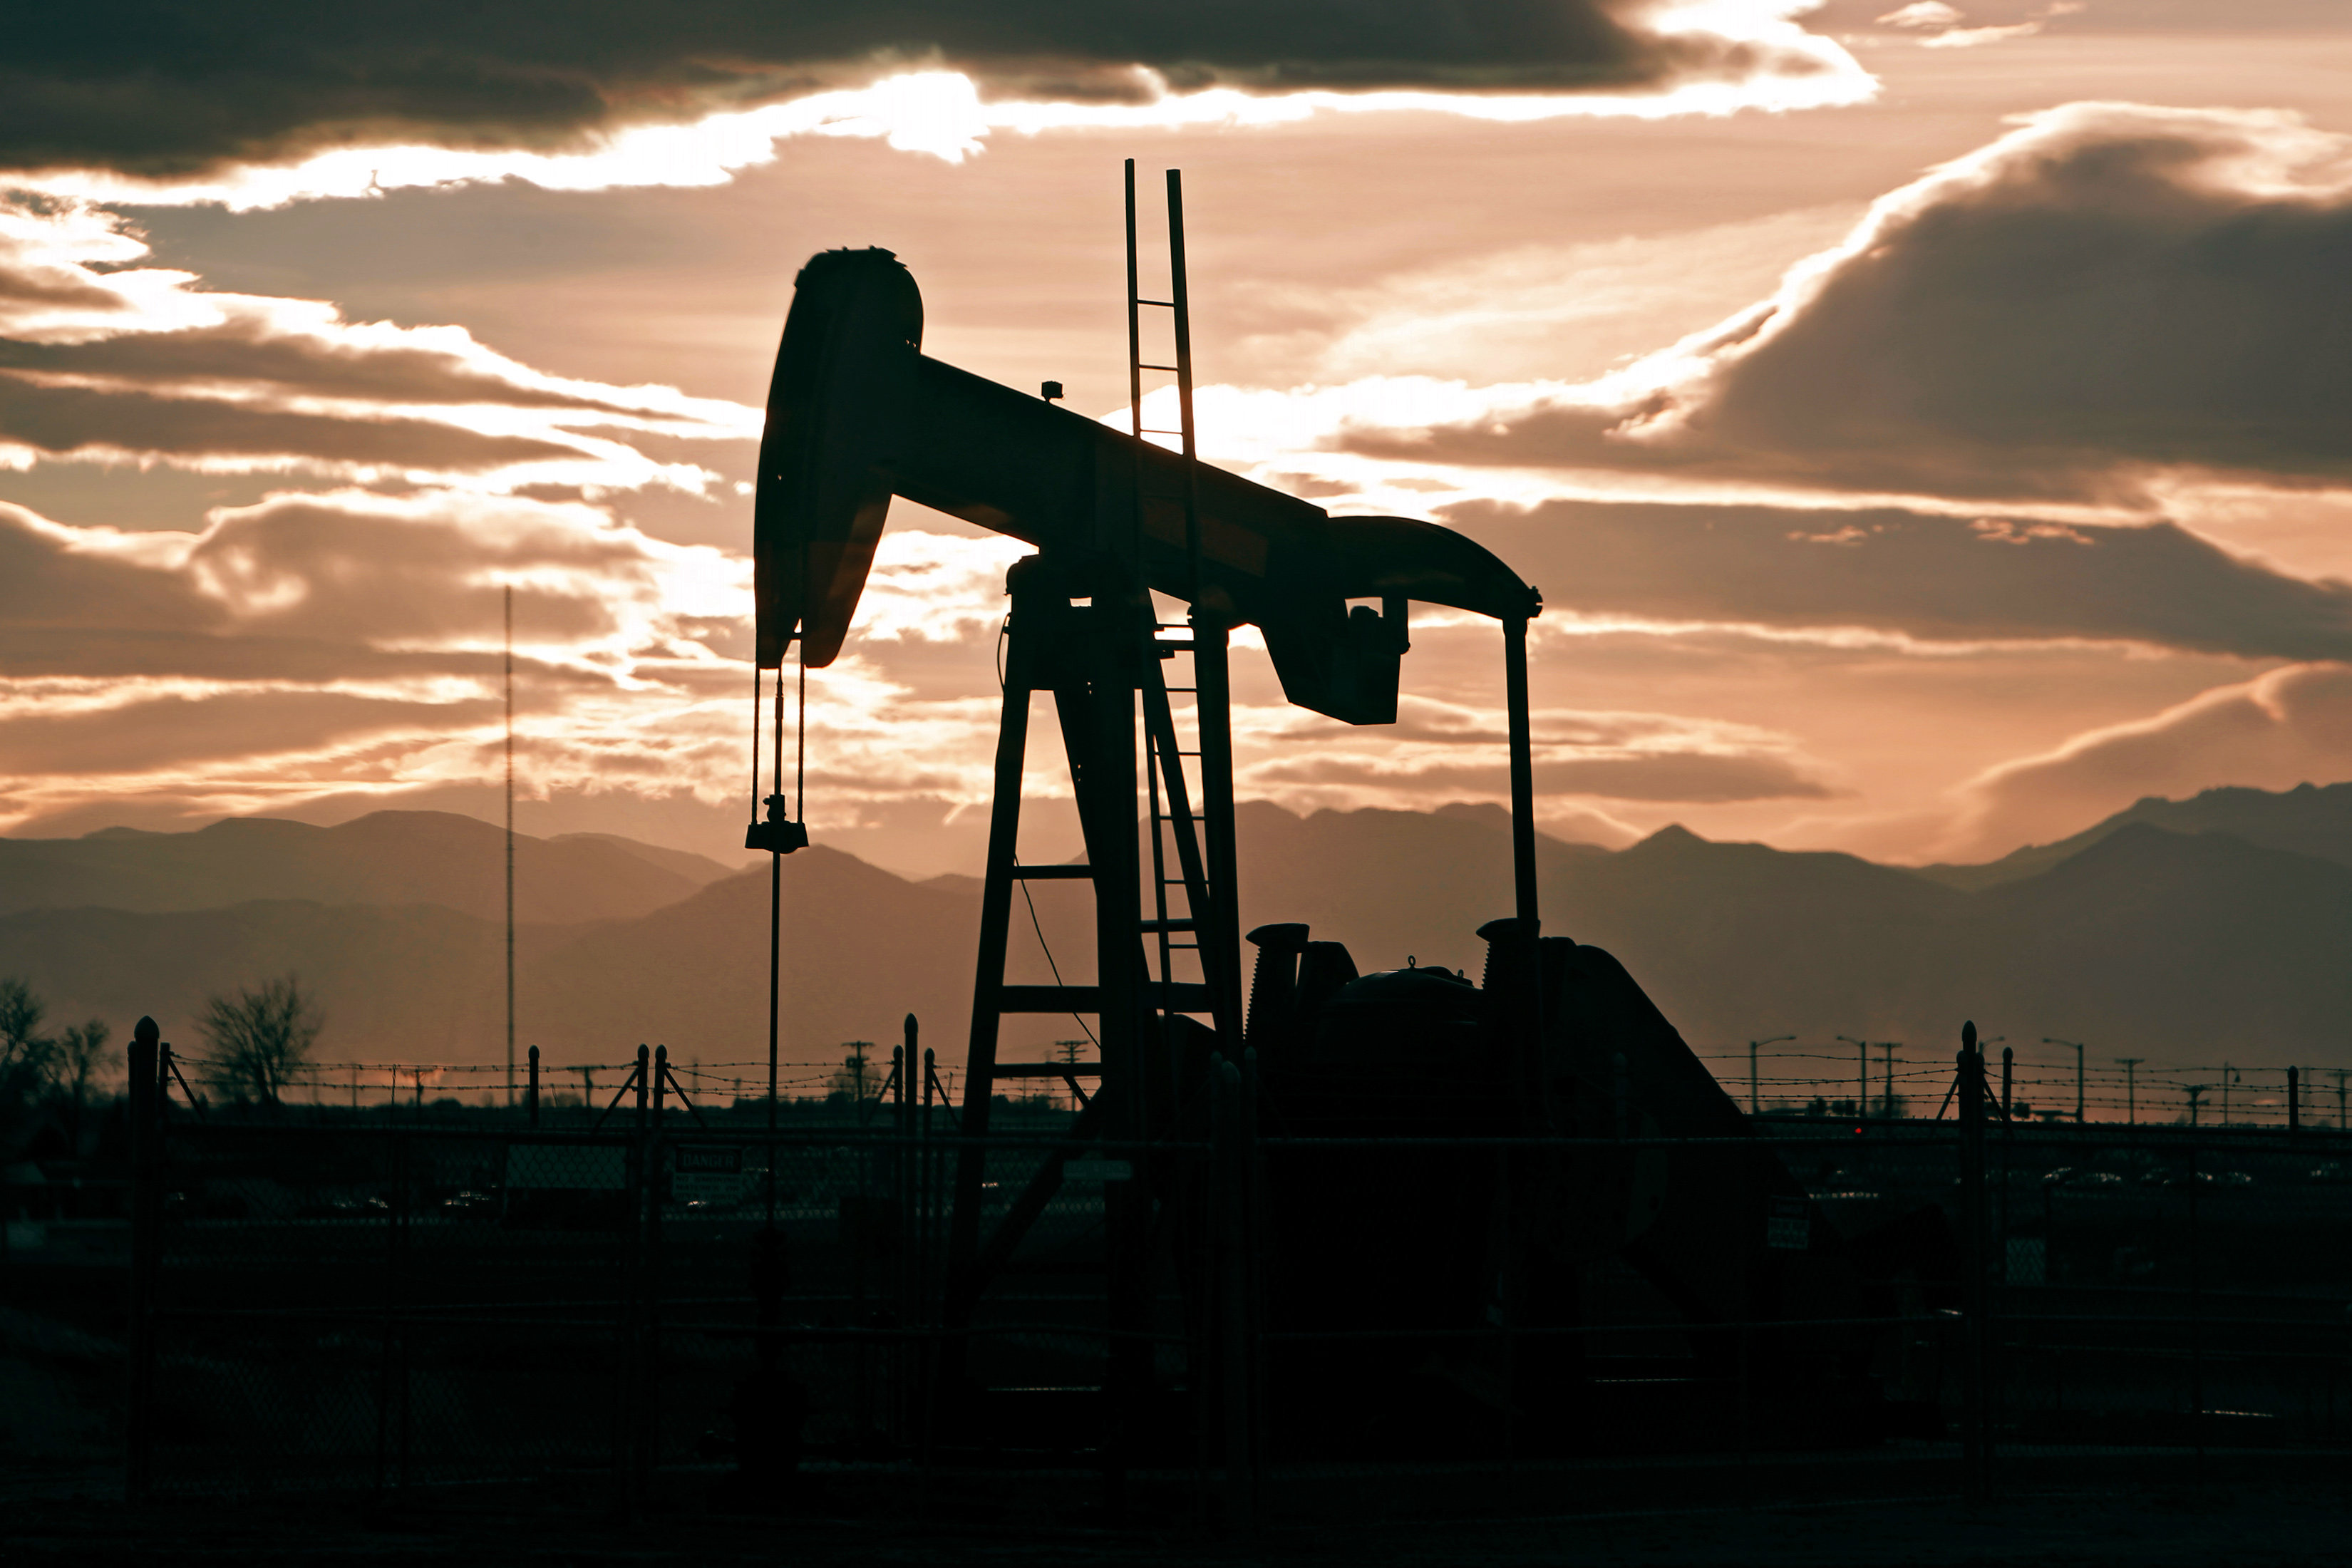 Photo: Oil drilling, pump jack, Colorado, sunset